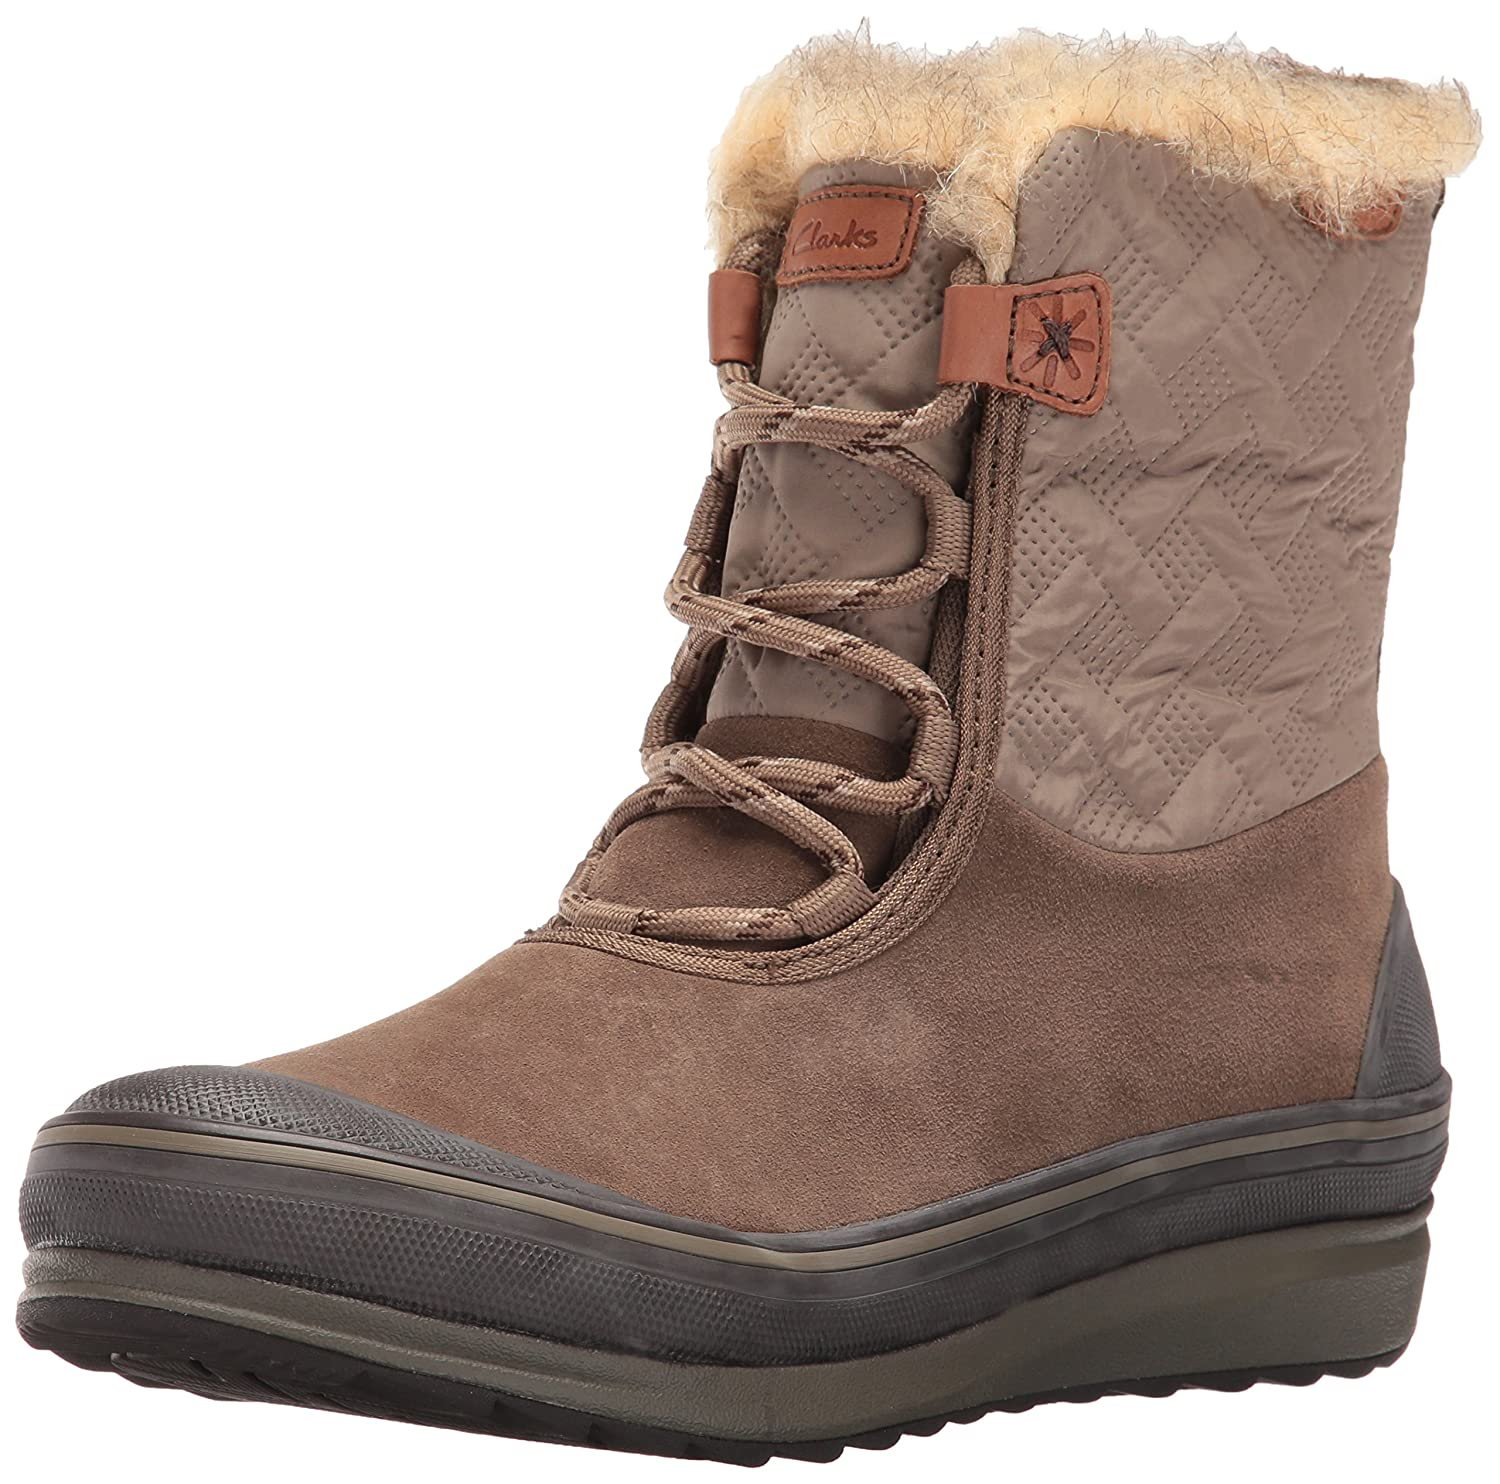 CLARKS Women's Muckers Mist Snow Boot B0195HRY0W 7.5 B(M) US|Brown Suede/Textile